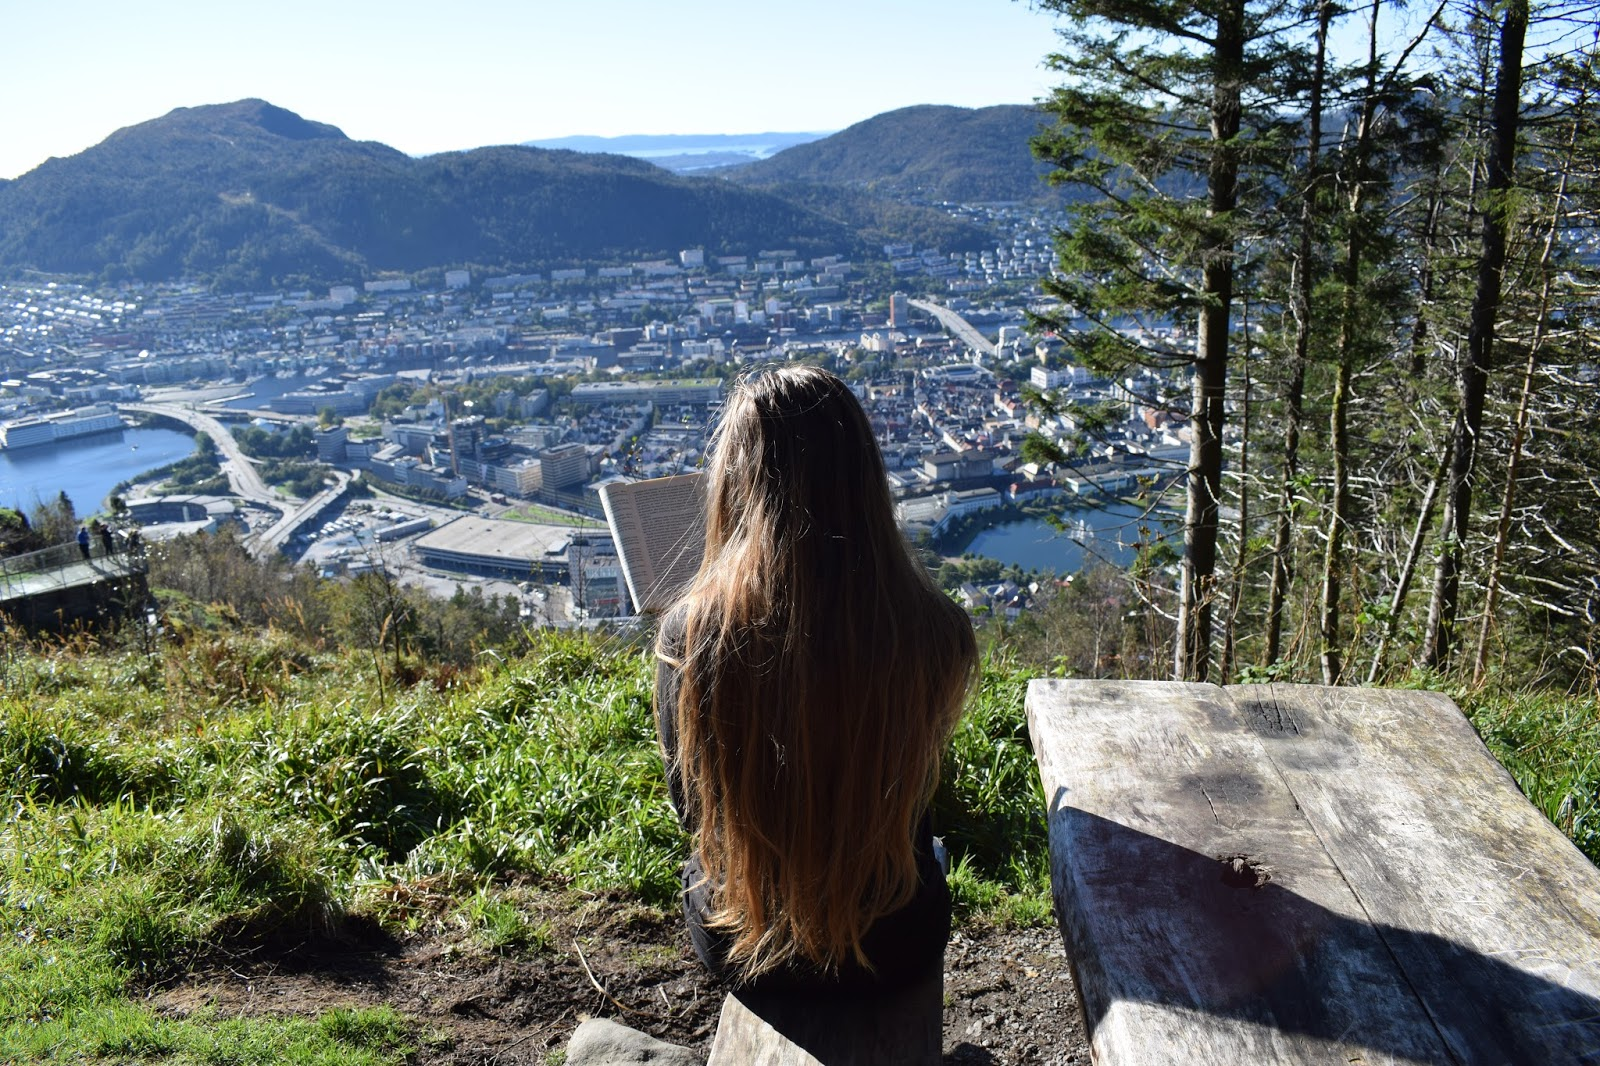 Polishgirl in Norway #1